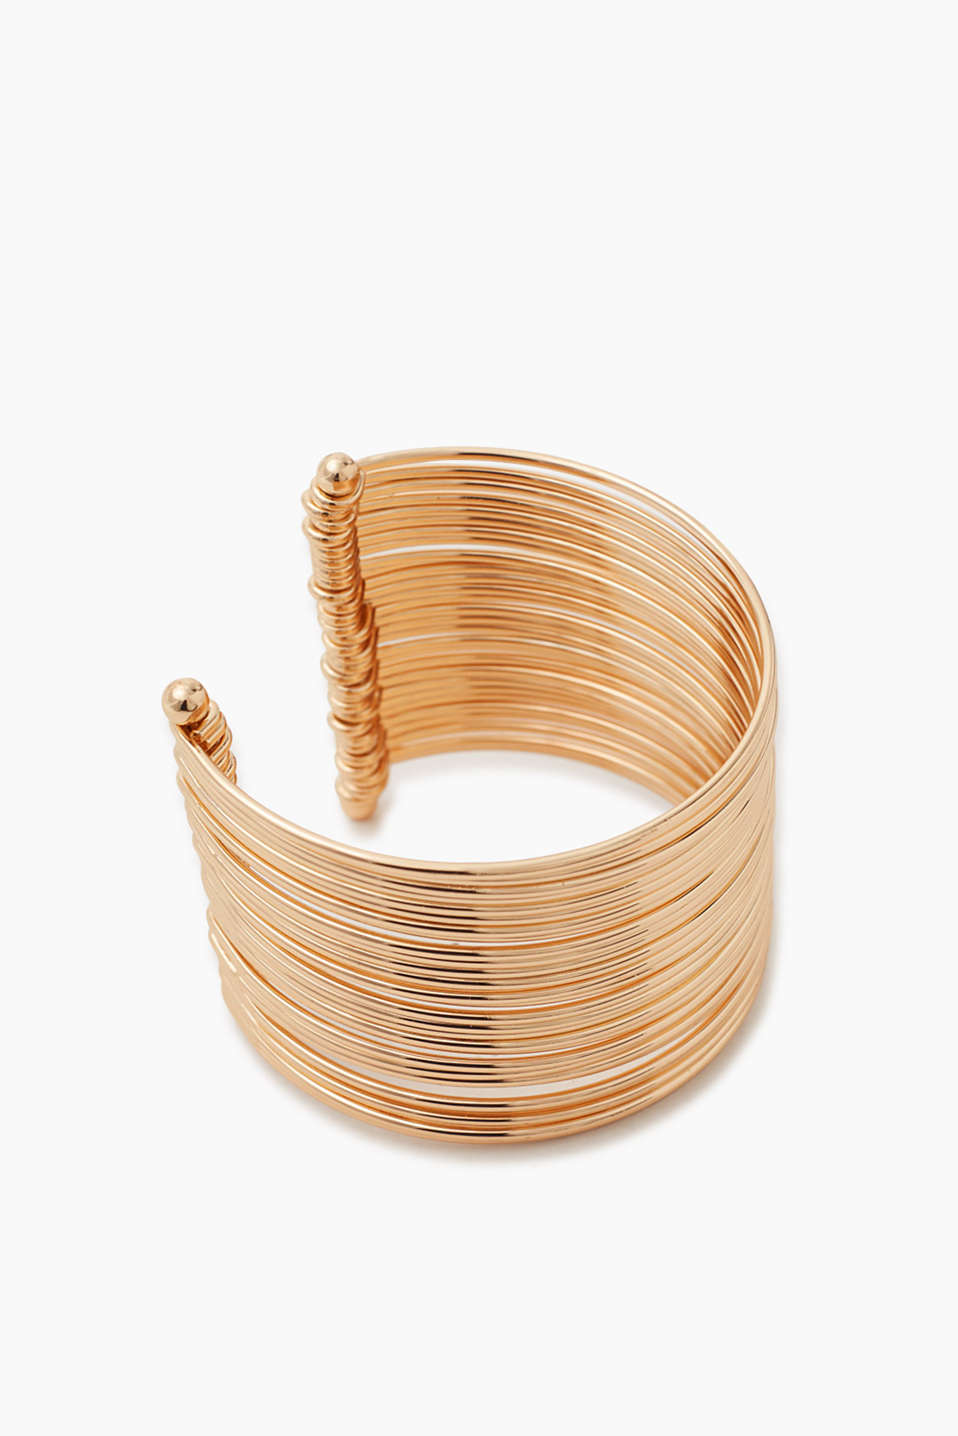 Open bangle made of dense rows of bangles in a gold tone